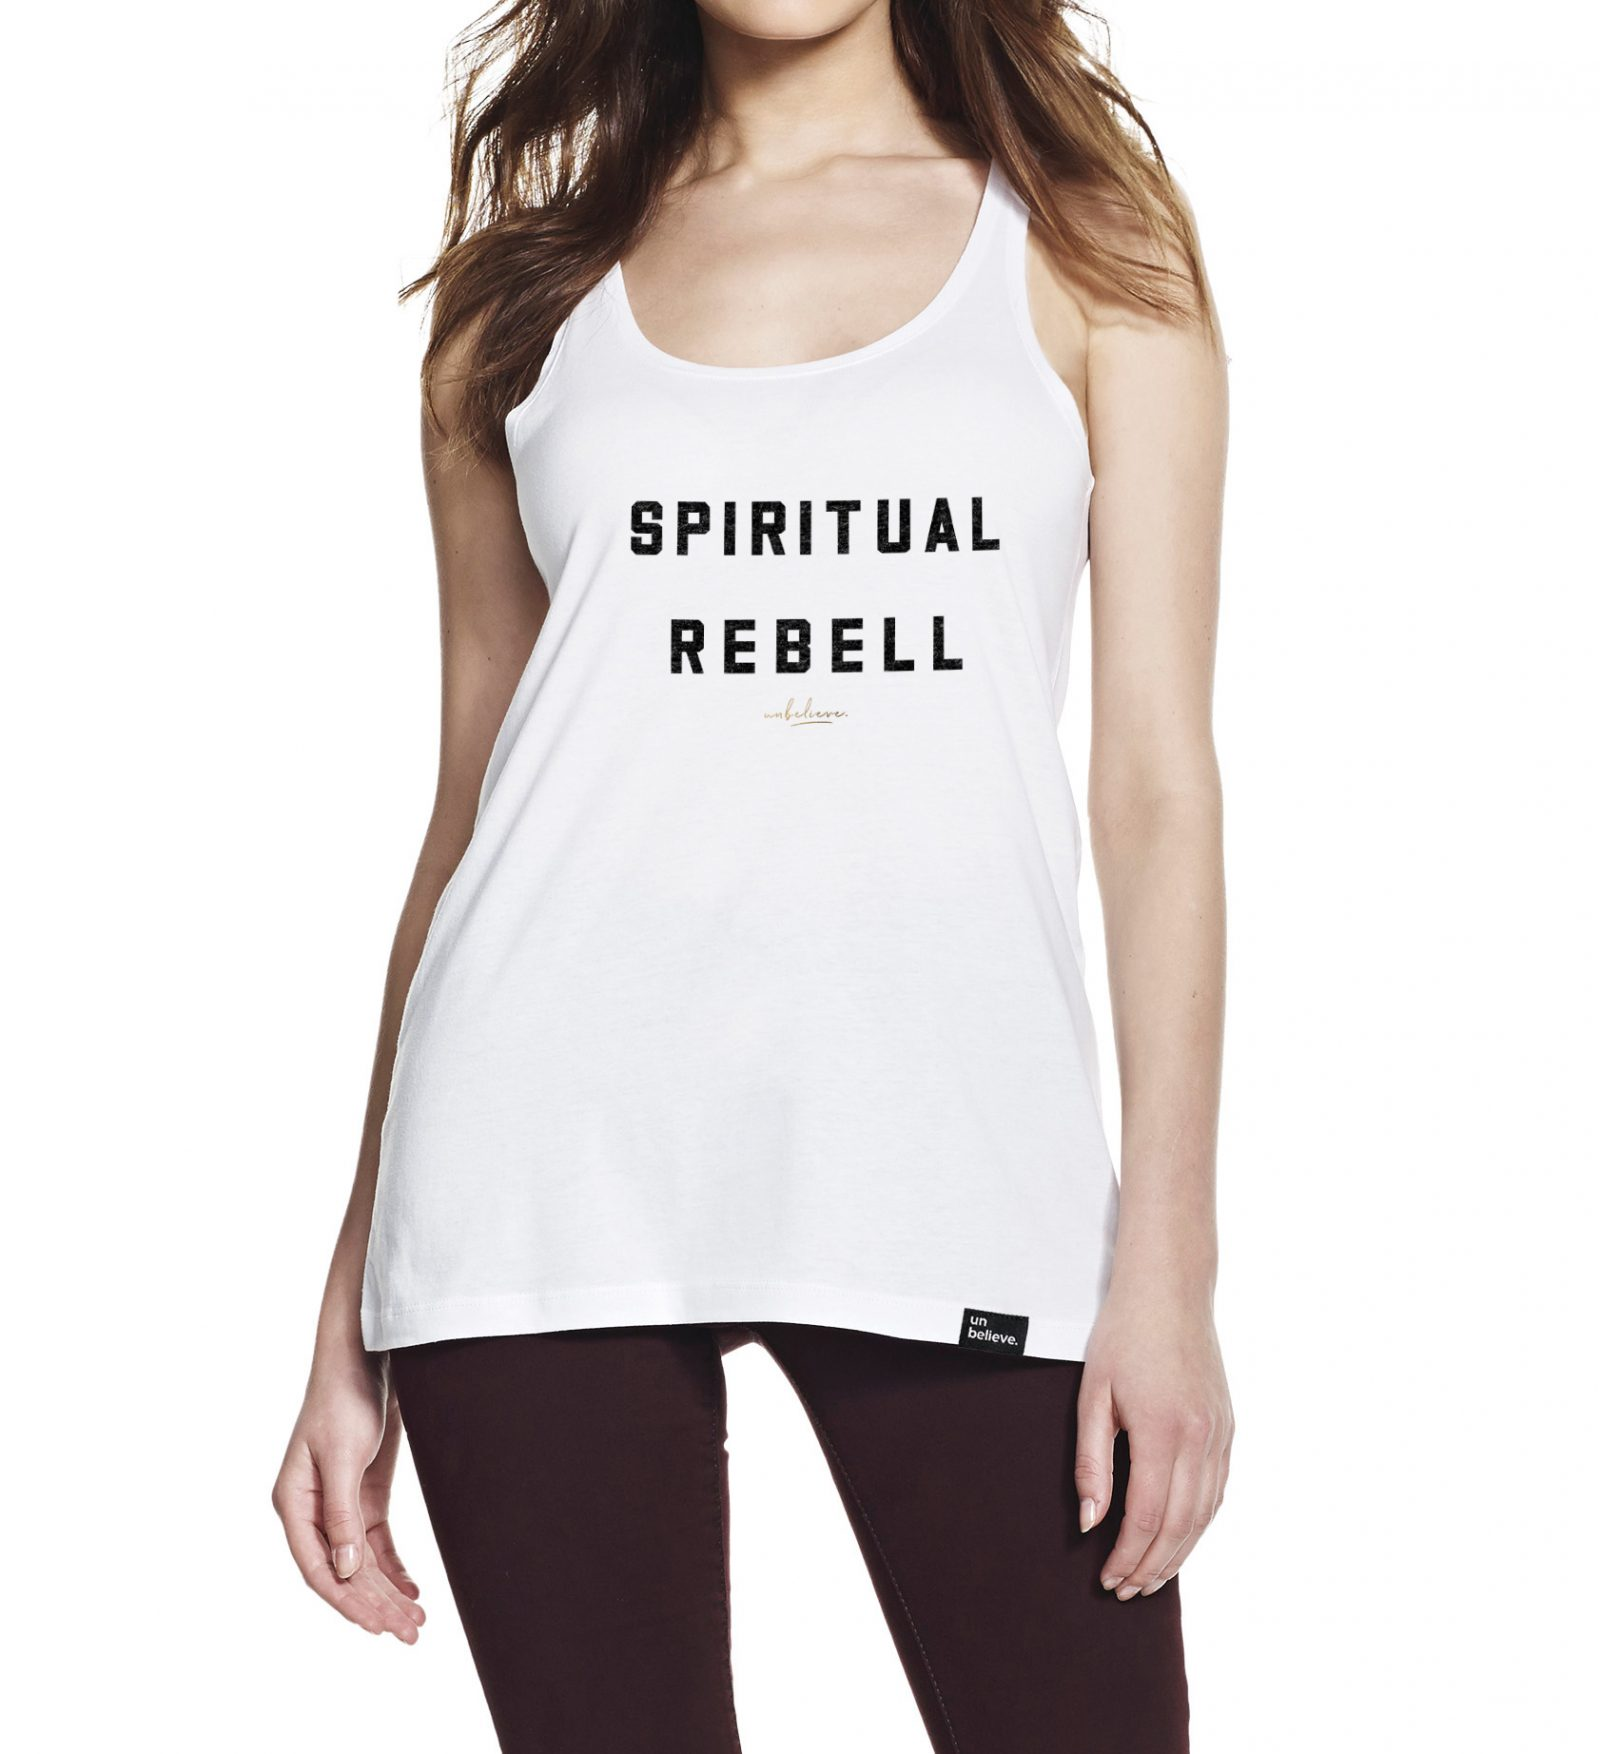 spiritual-rebel-woman-large1